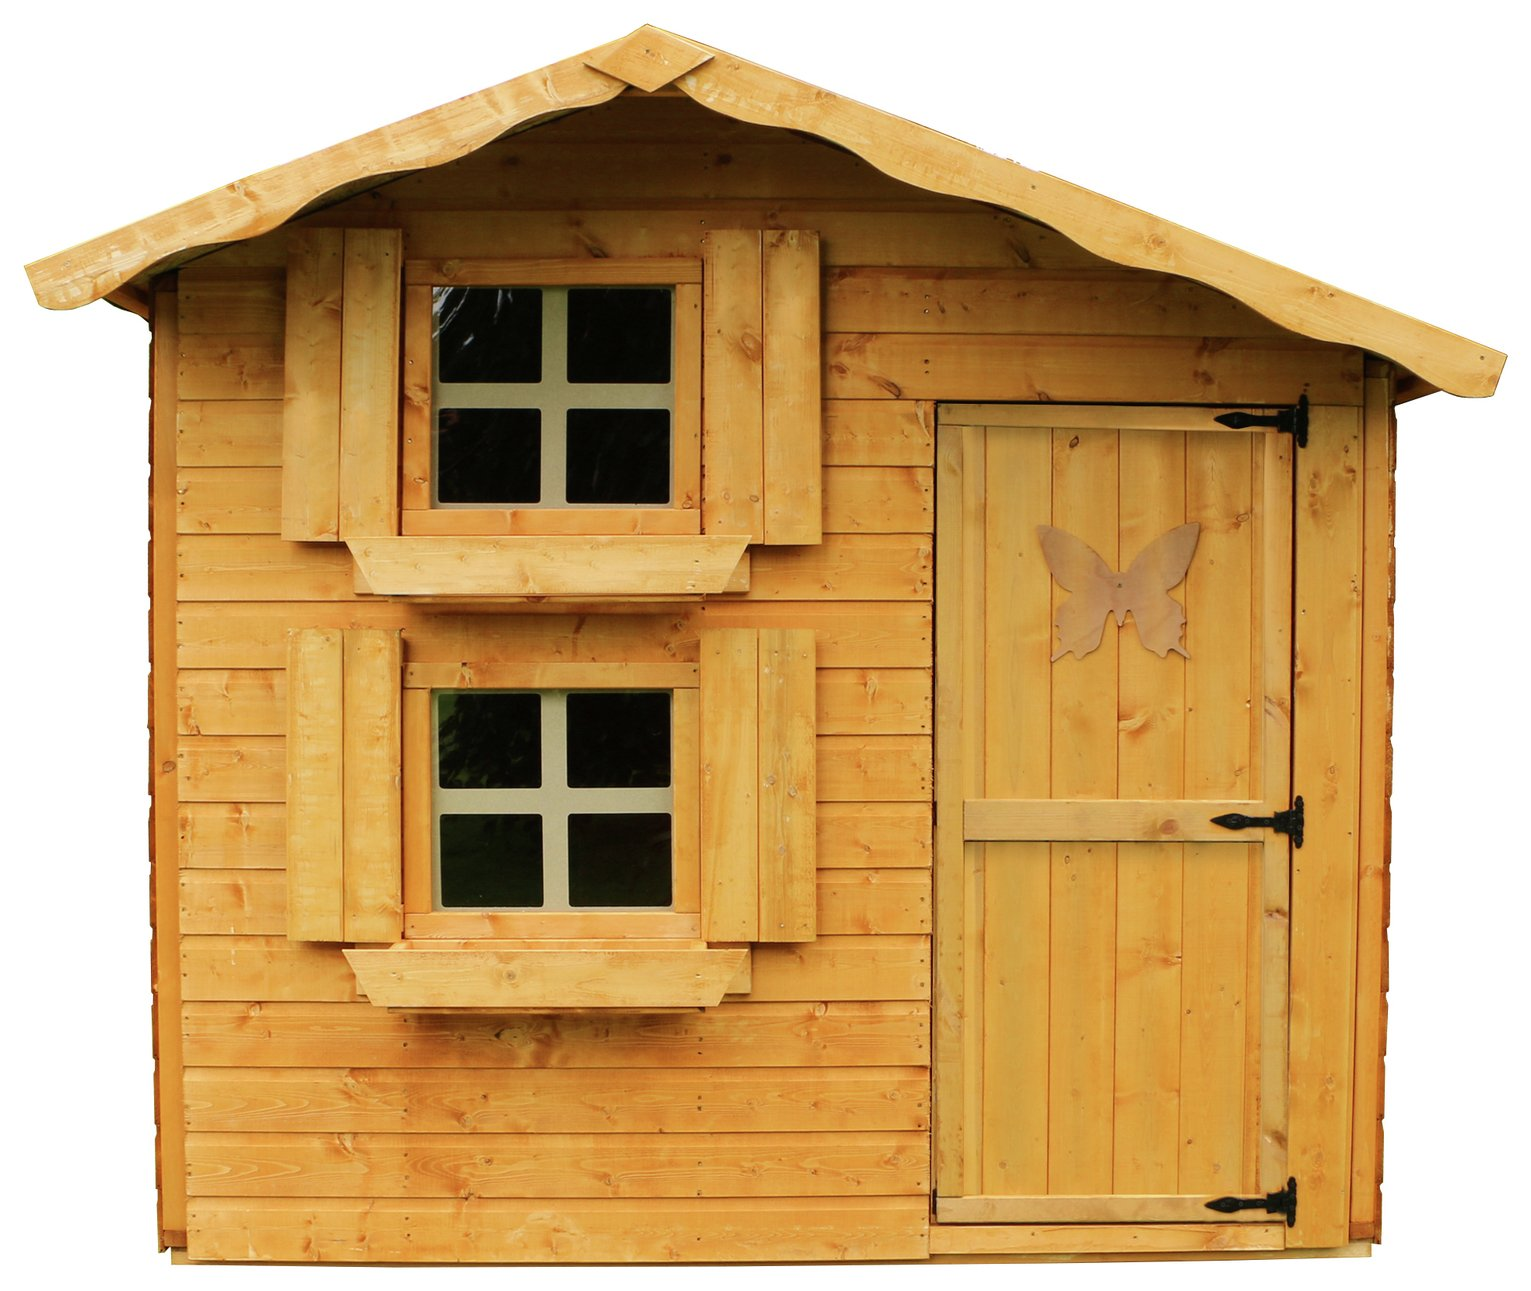 Mercia Garden Products 7x5 Double Storey Playhouse.